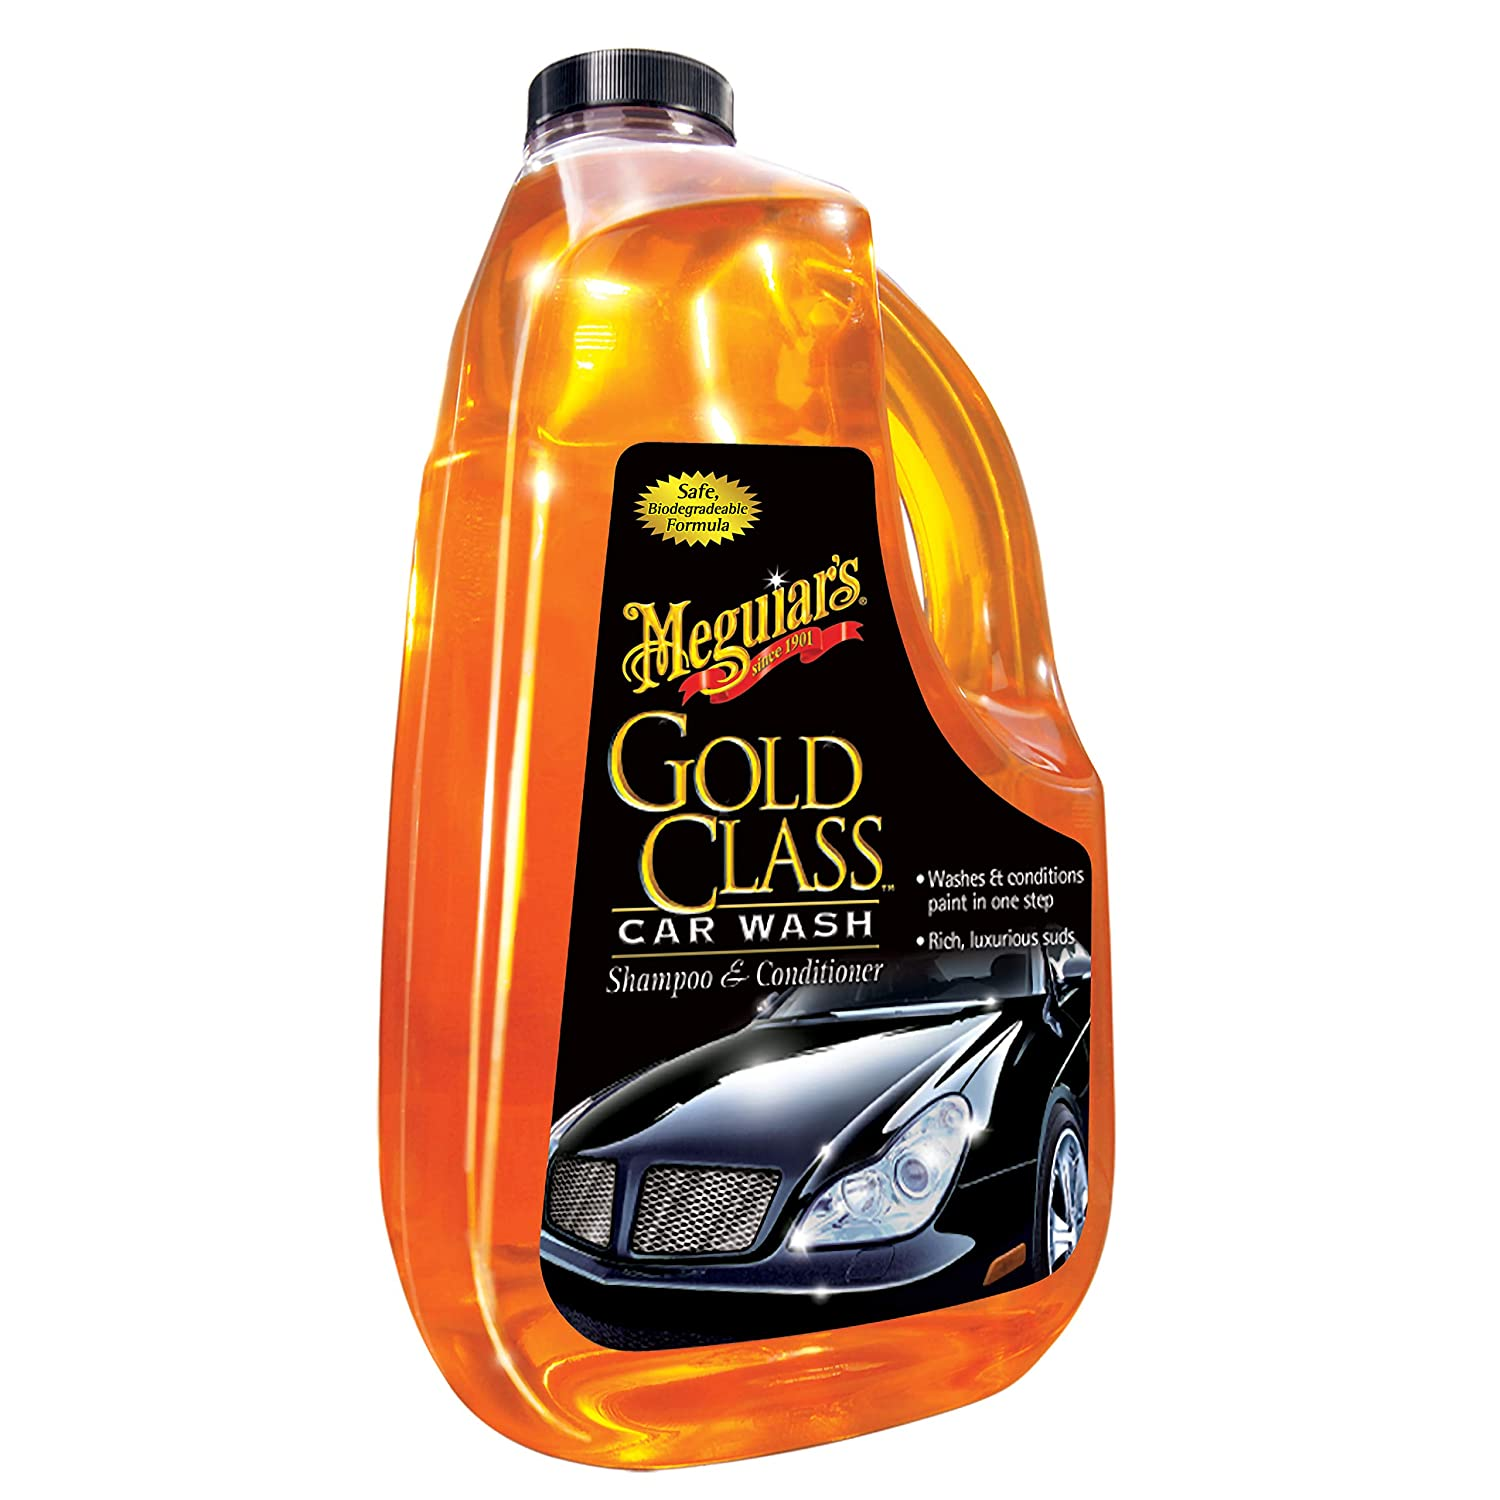 Meguiars ME G7164 Gold Class Car Wash Shampoo and Conditioner AutoStyle